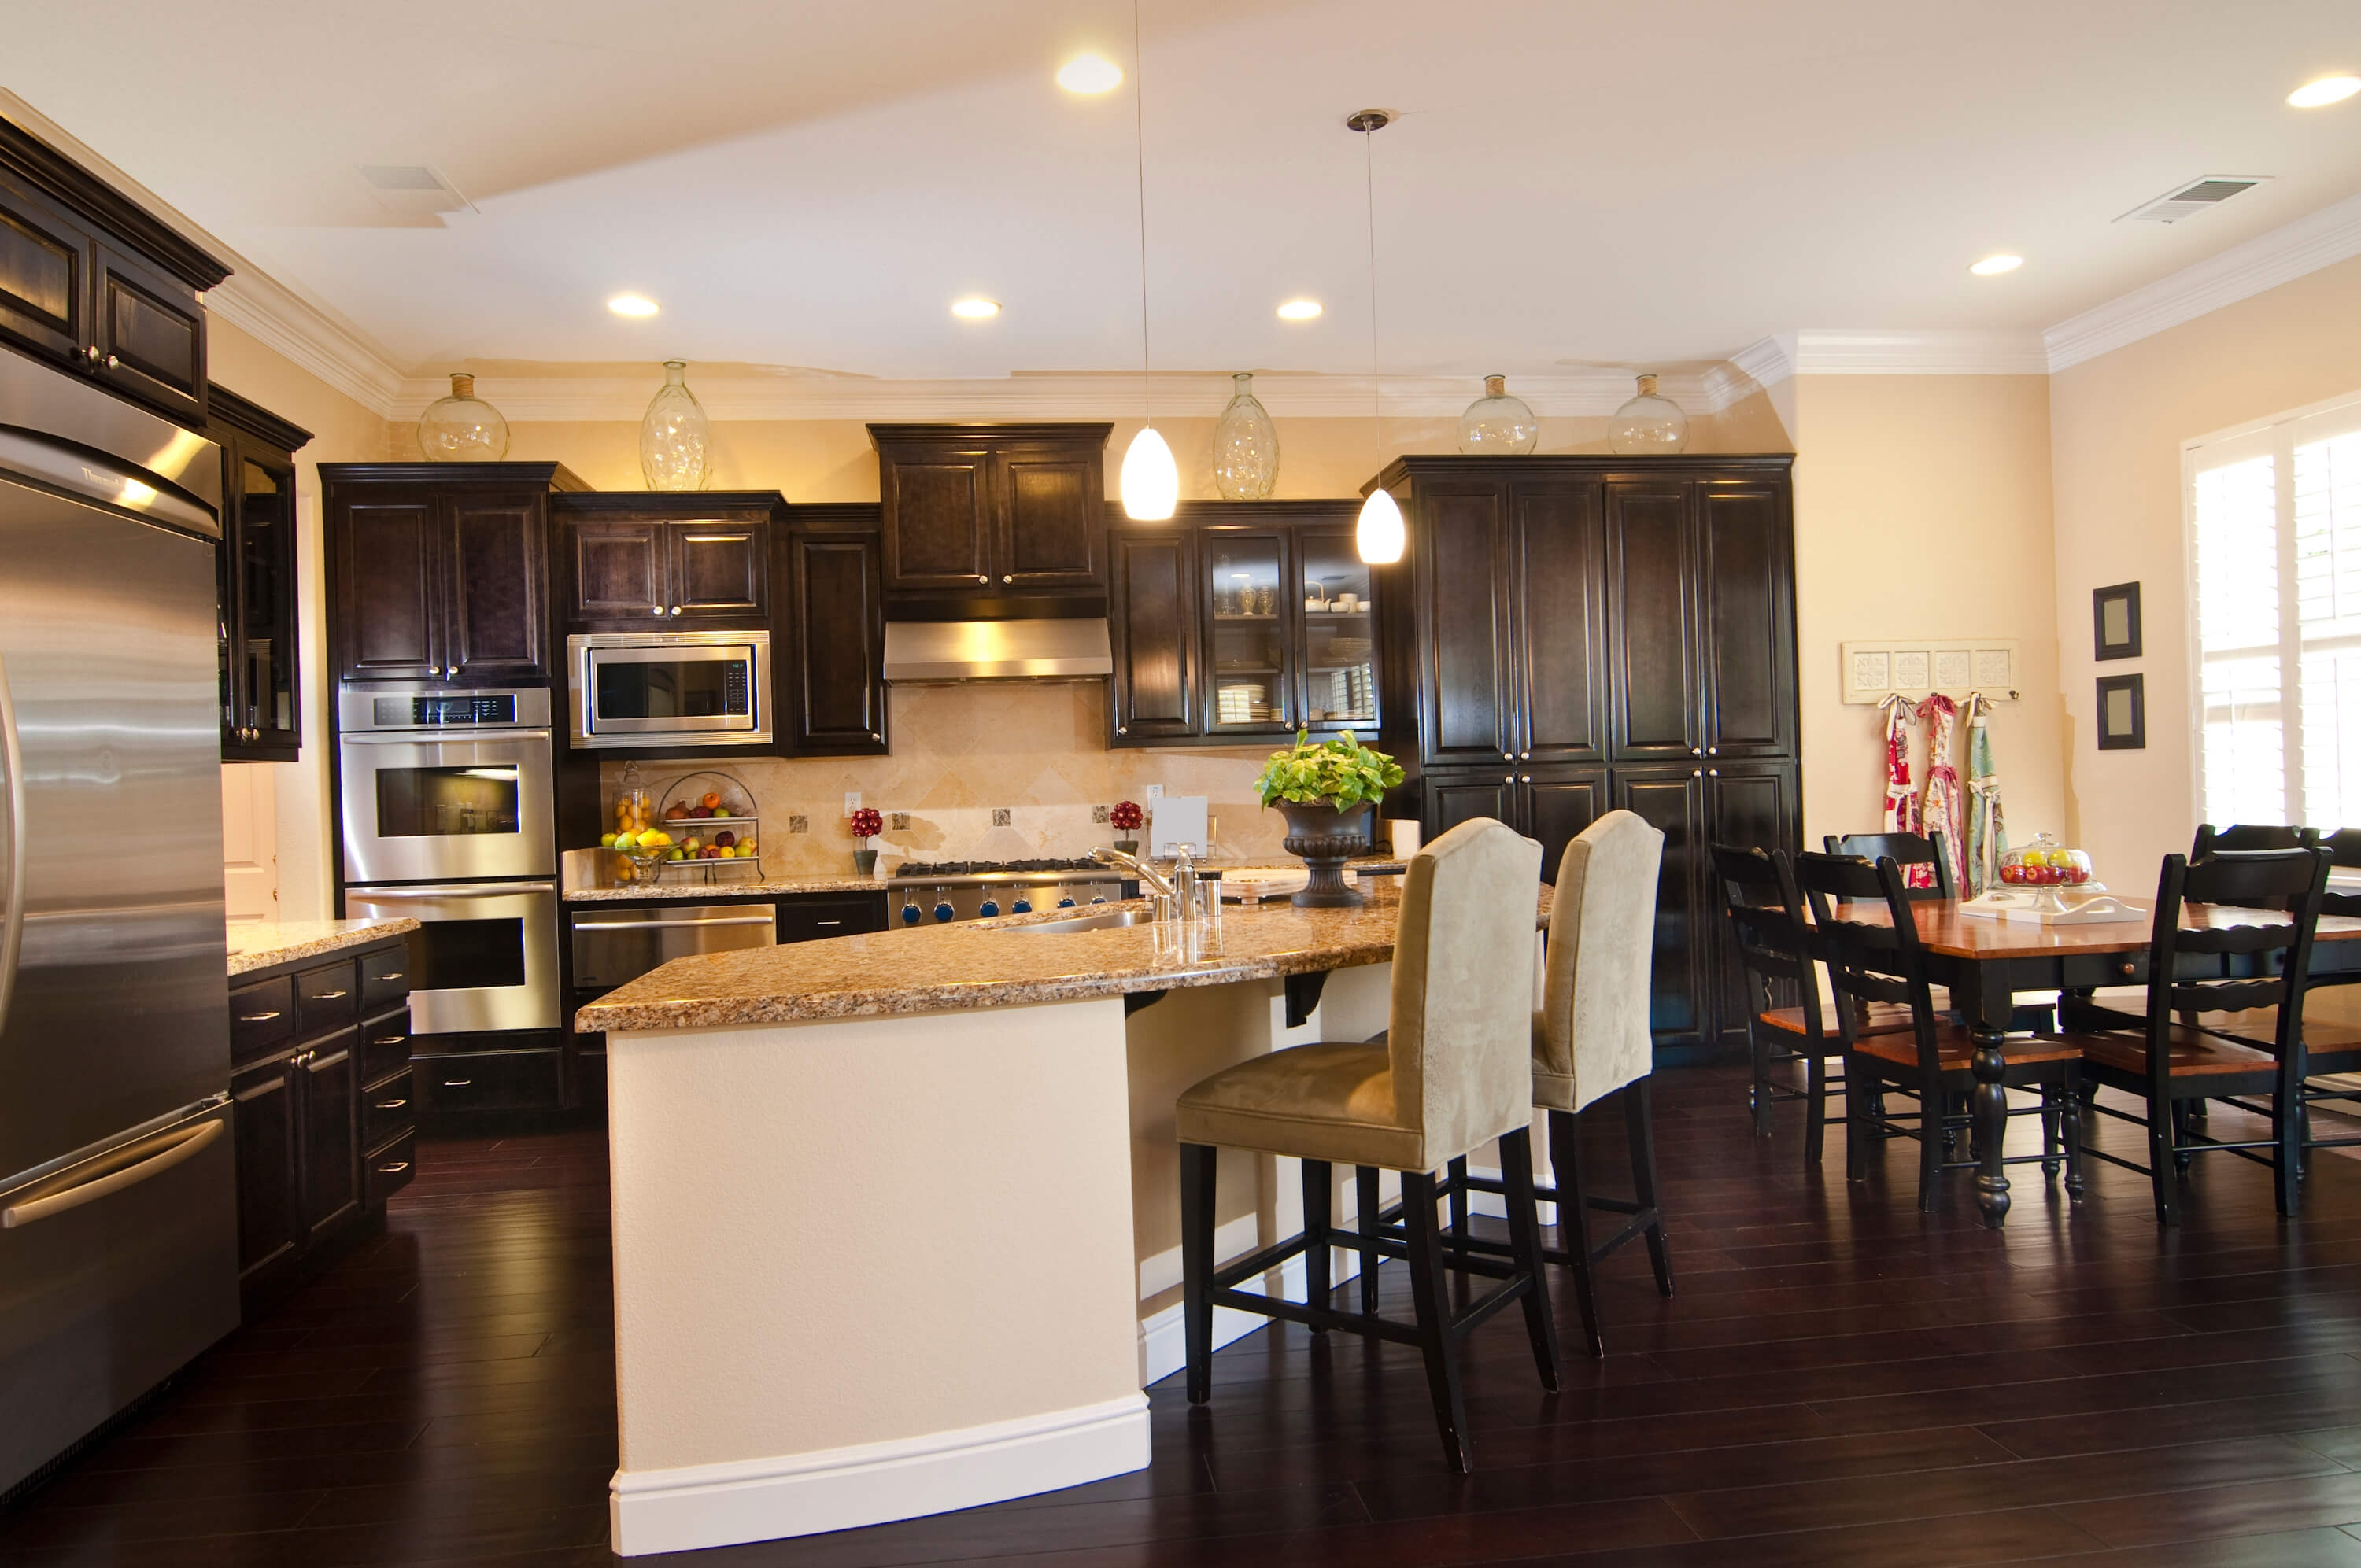 Images Of Kitchens With Dark Cabinets And Wood Floors